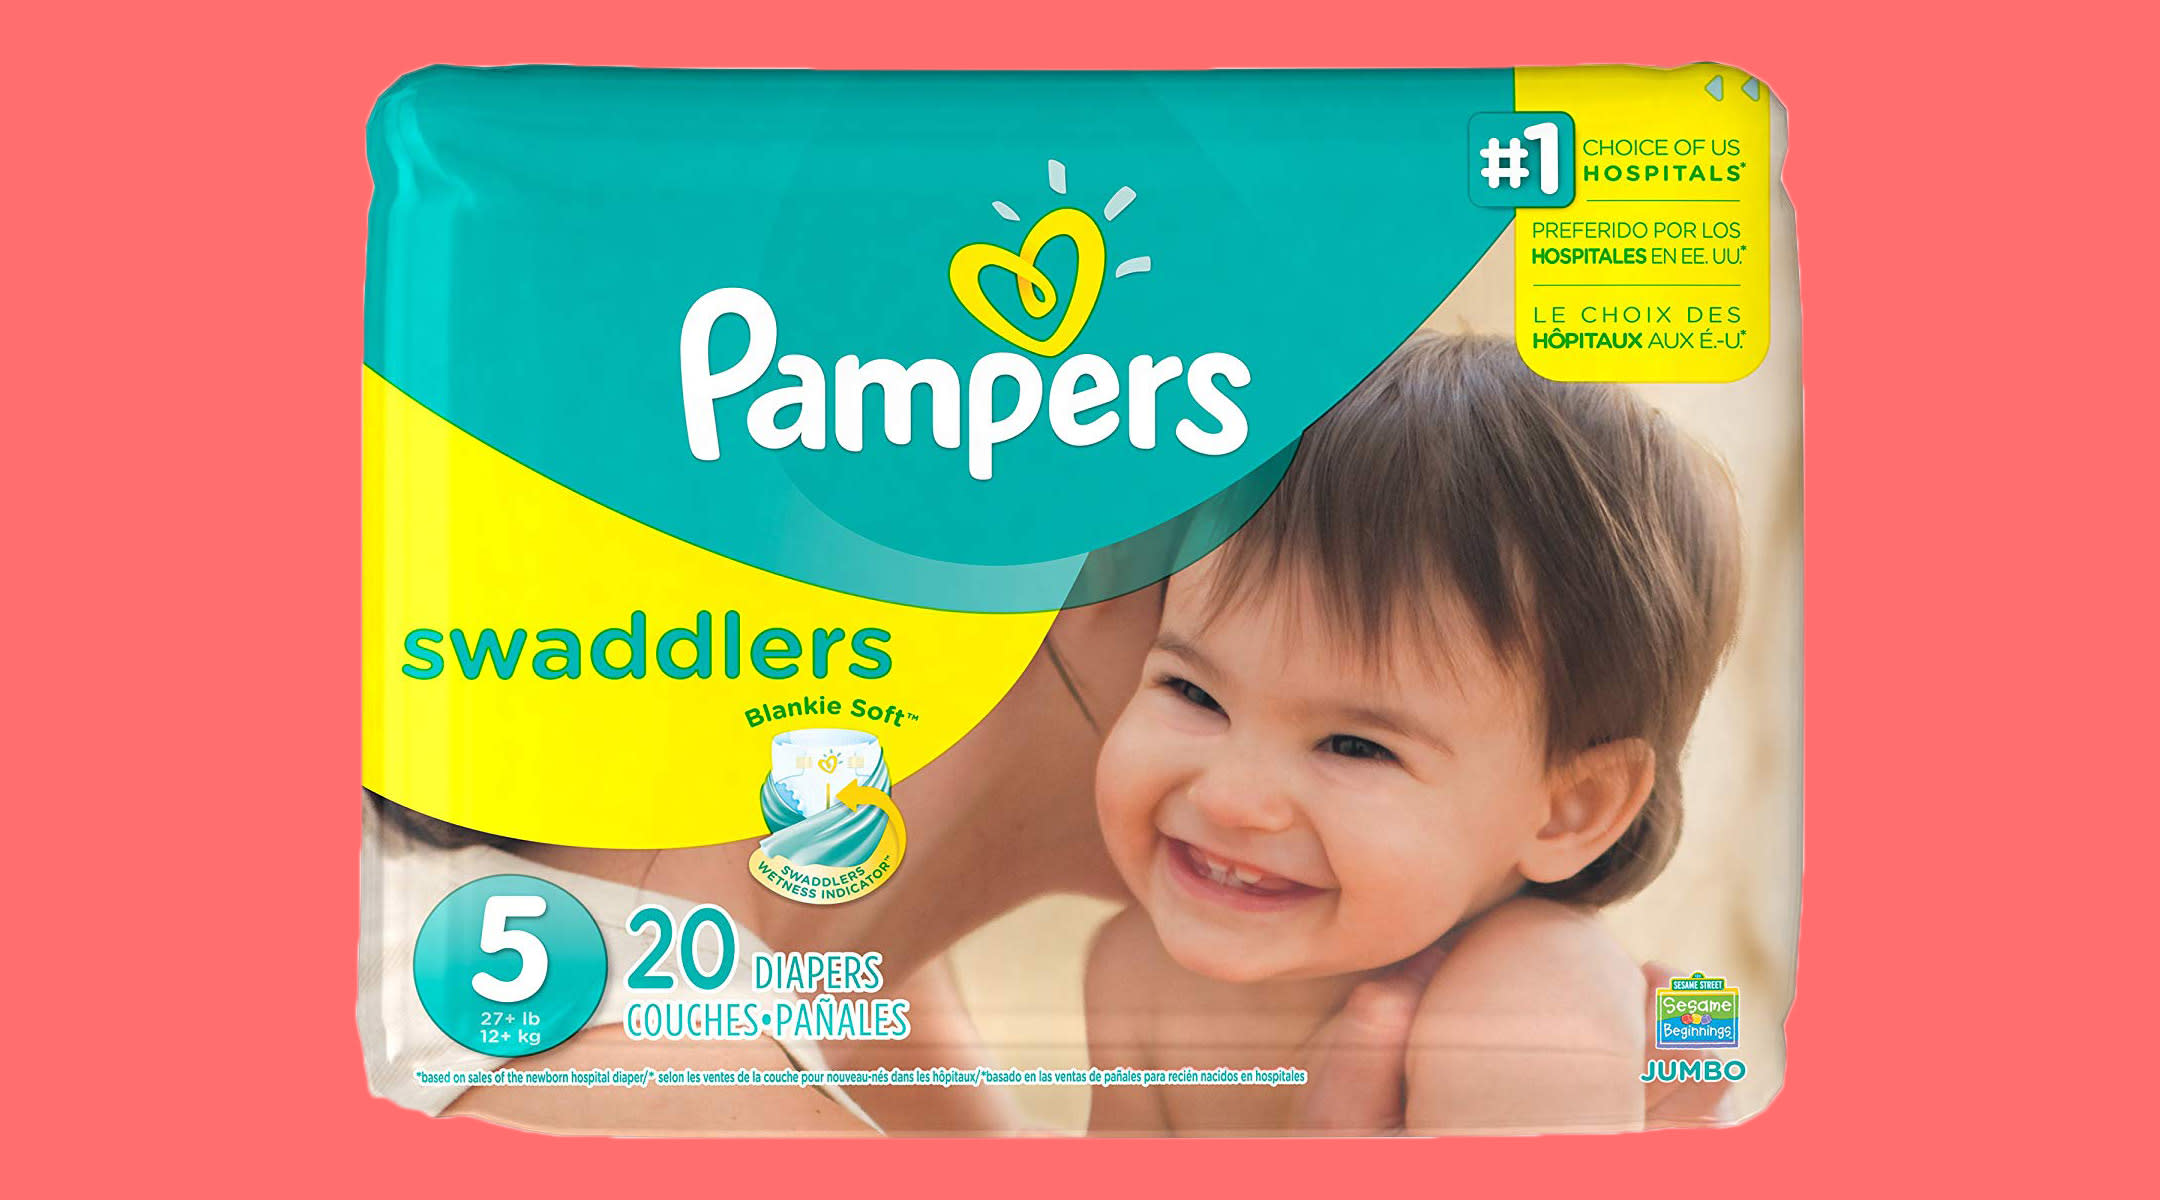 pampers diaper product, due to increase in price